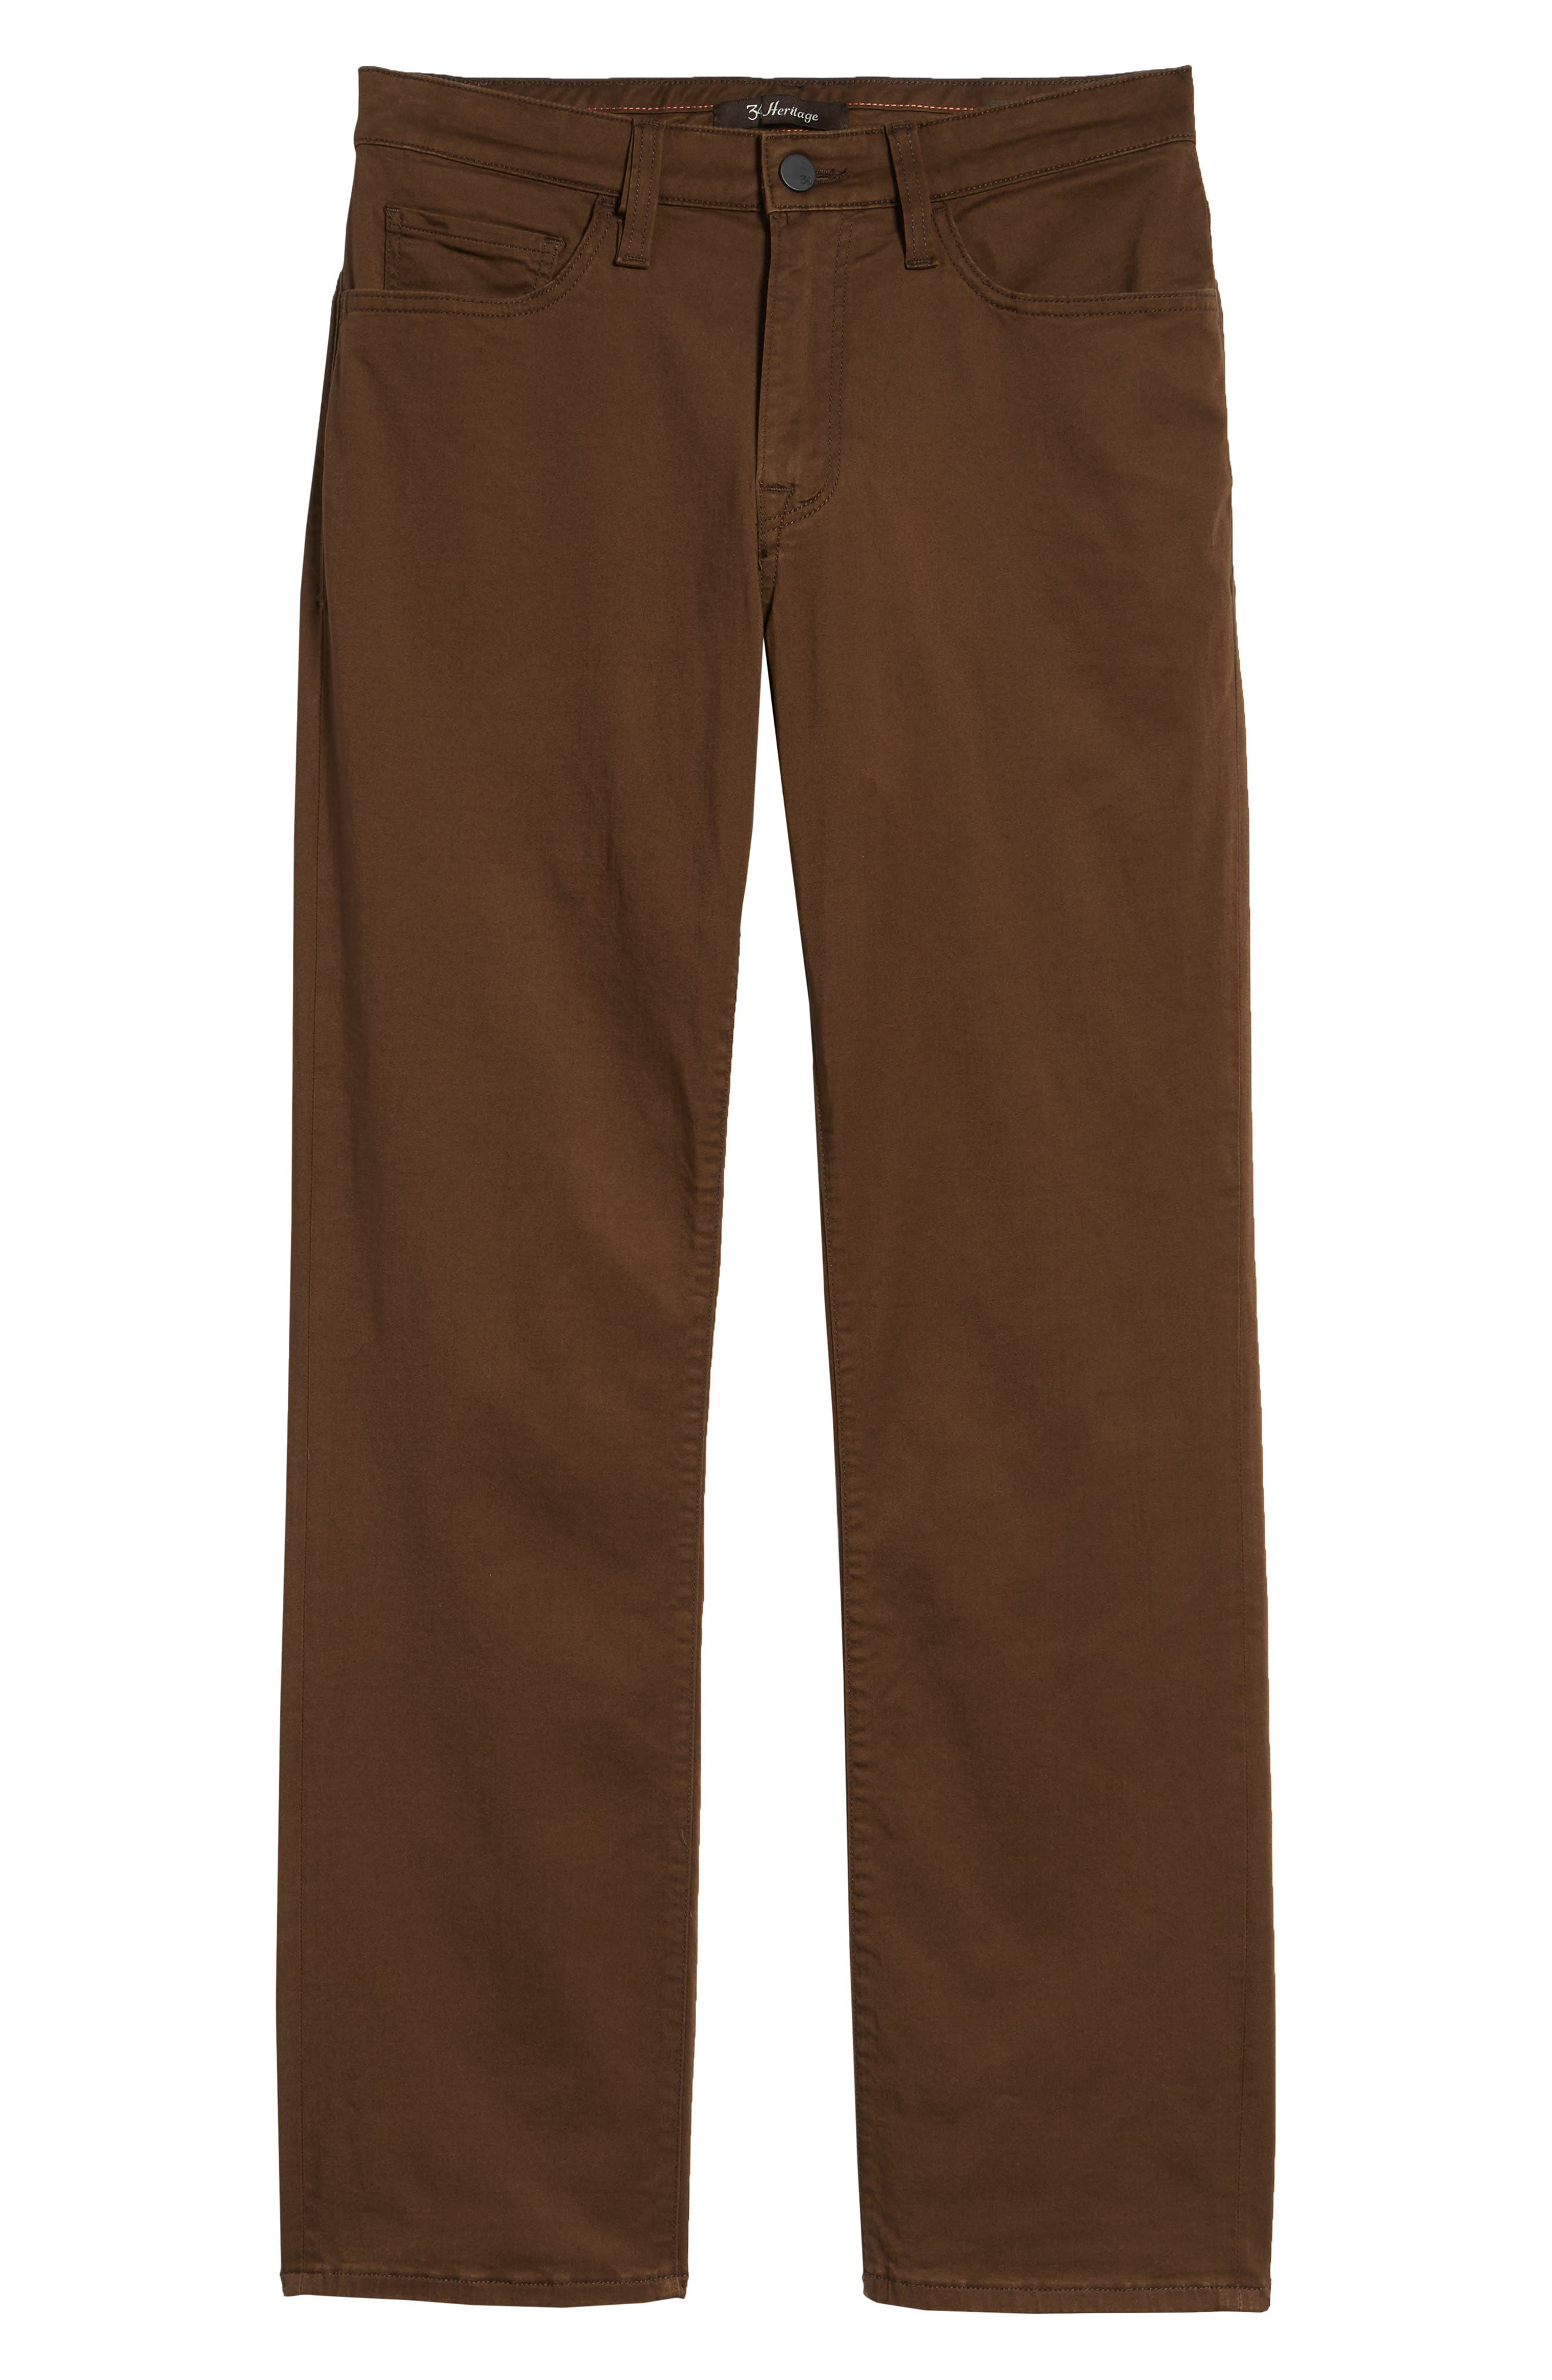 Charisma Relaxed Fit Twill Pants,                             Alternate thumbnail 6, color,                             CAF TWILL